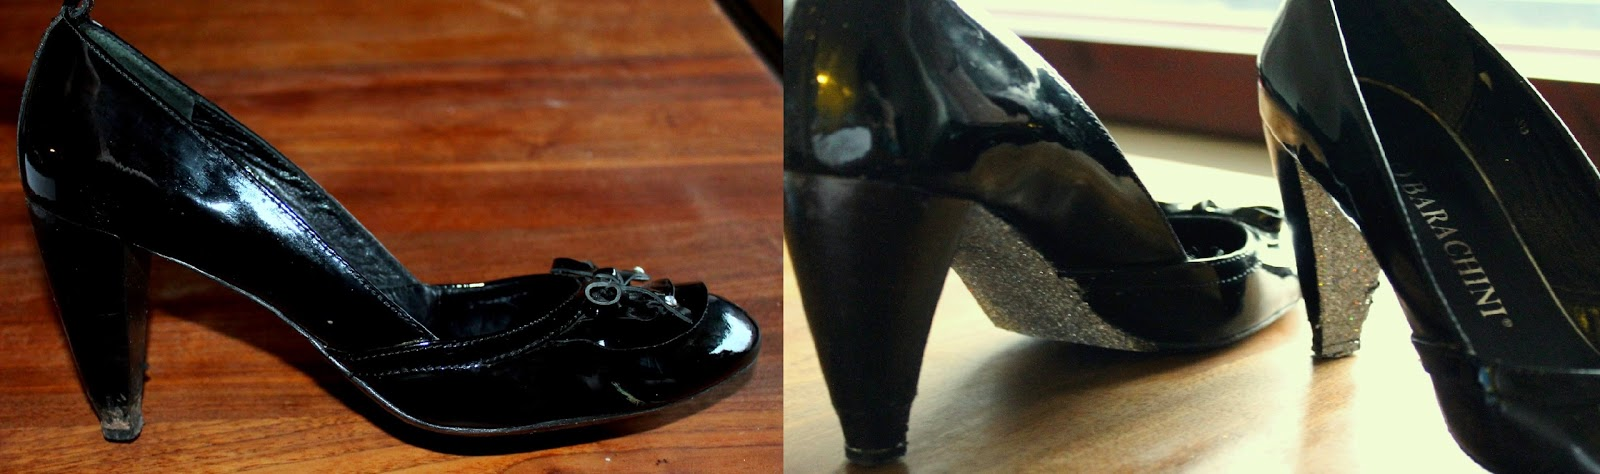 DIY idea sparkling heels